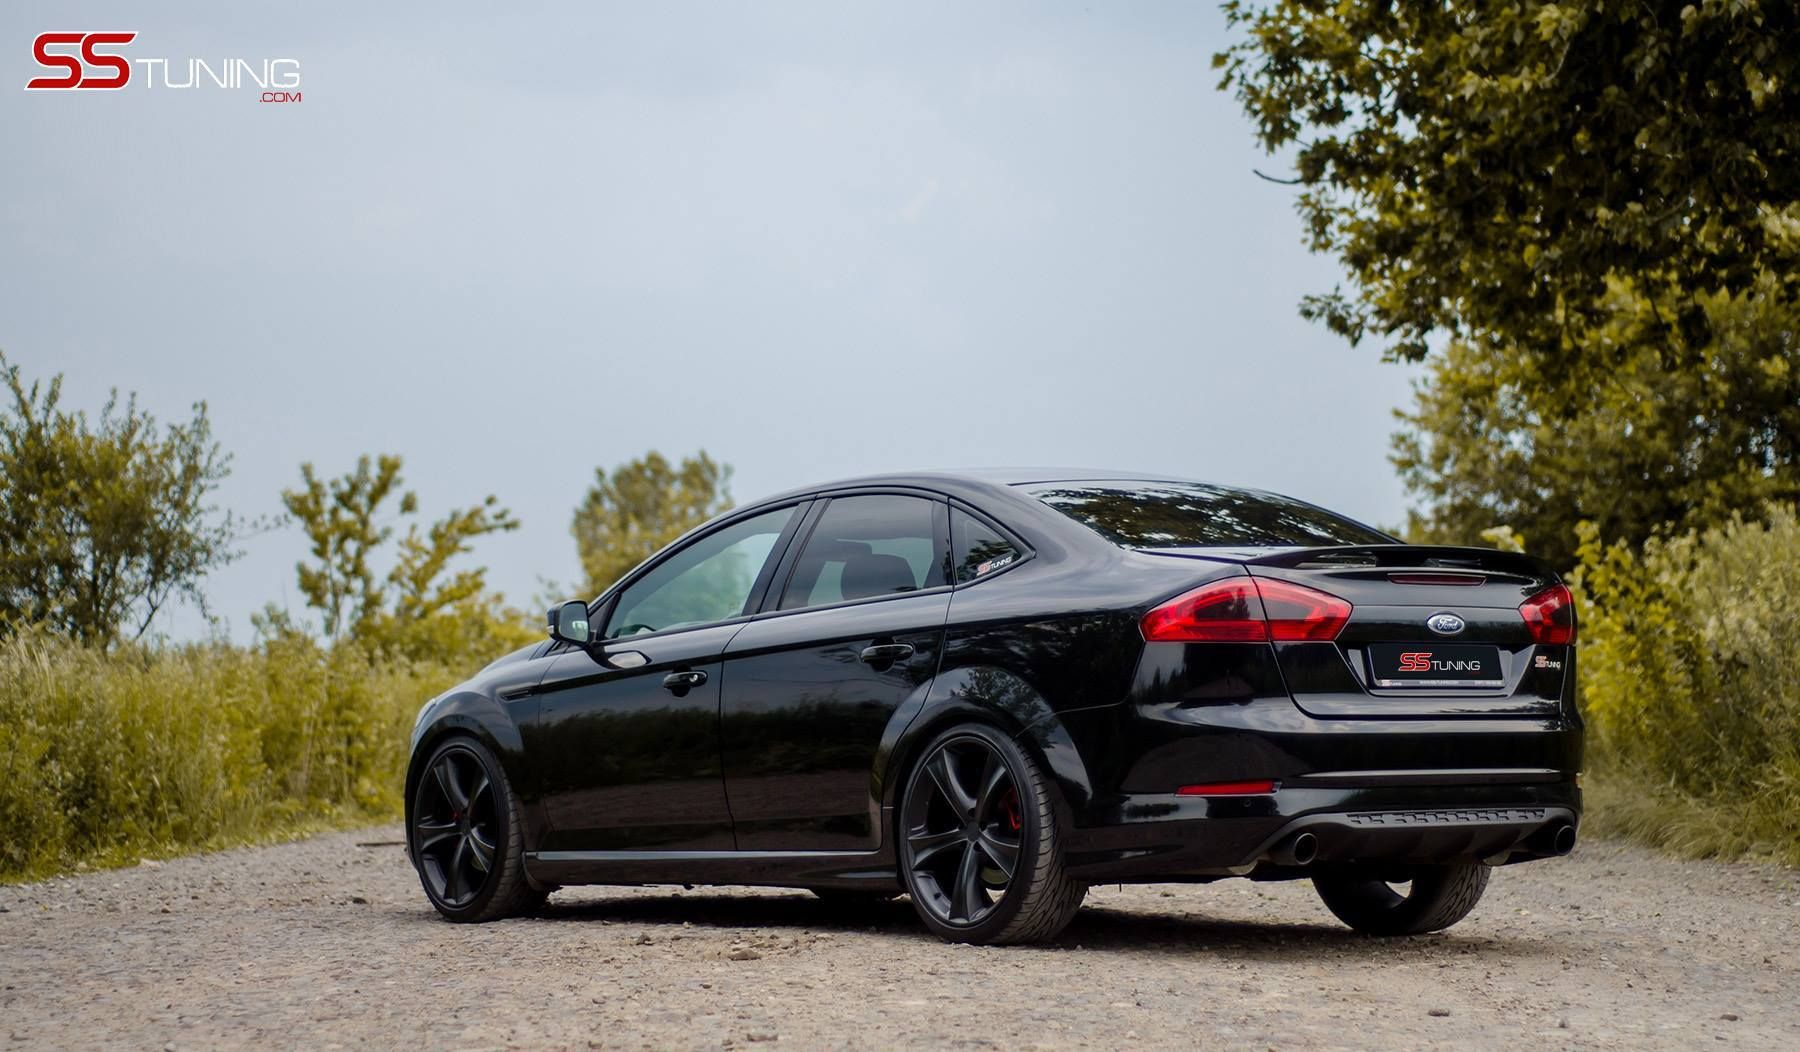 Ford focus st club in europe news and forum find this pin and more on ford mondeo fusion and performance